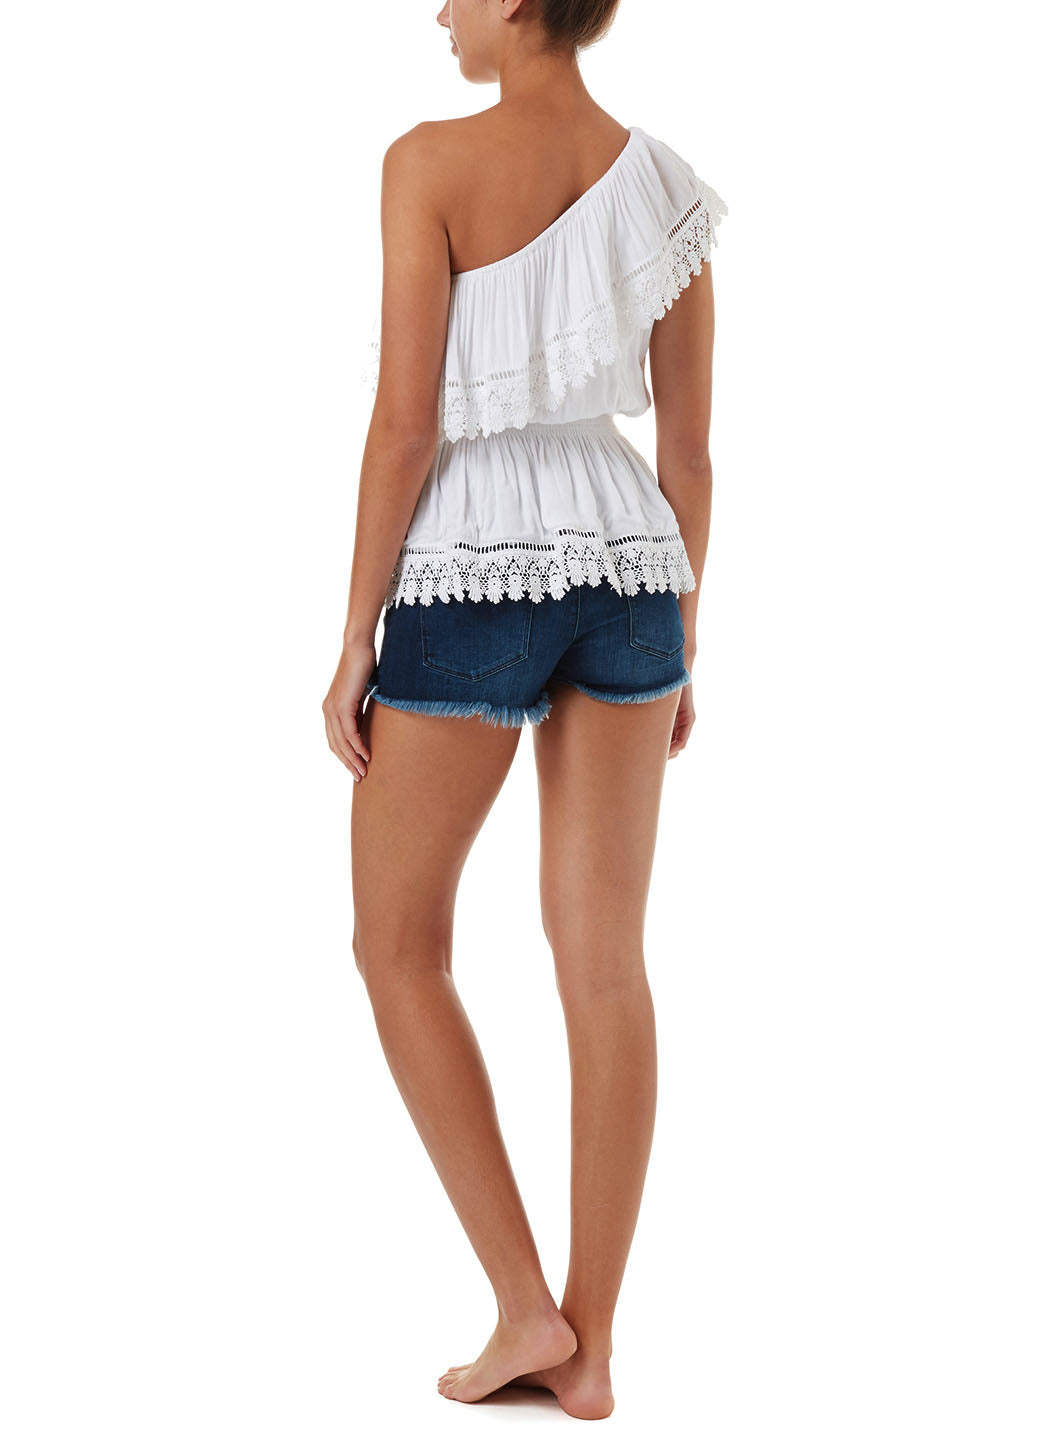 Joanna White One Shoulder Embroidered Frill Top